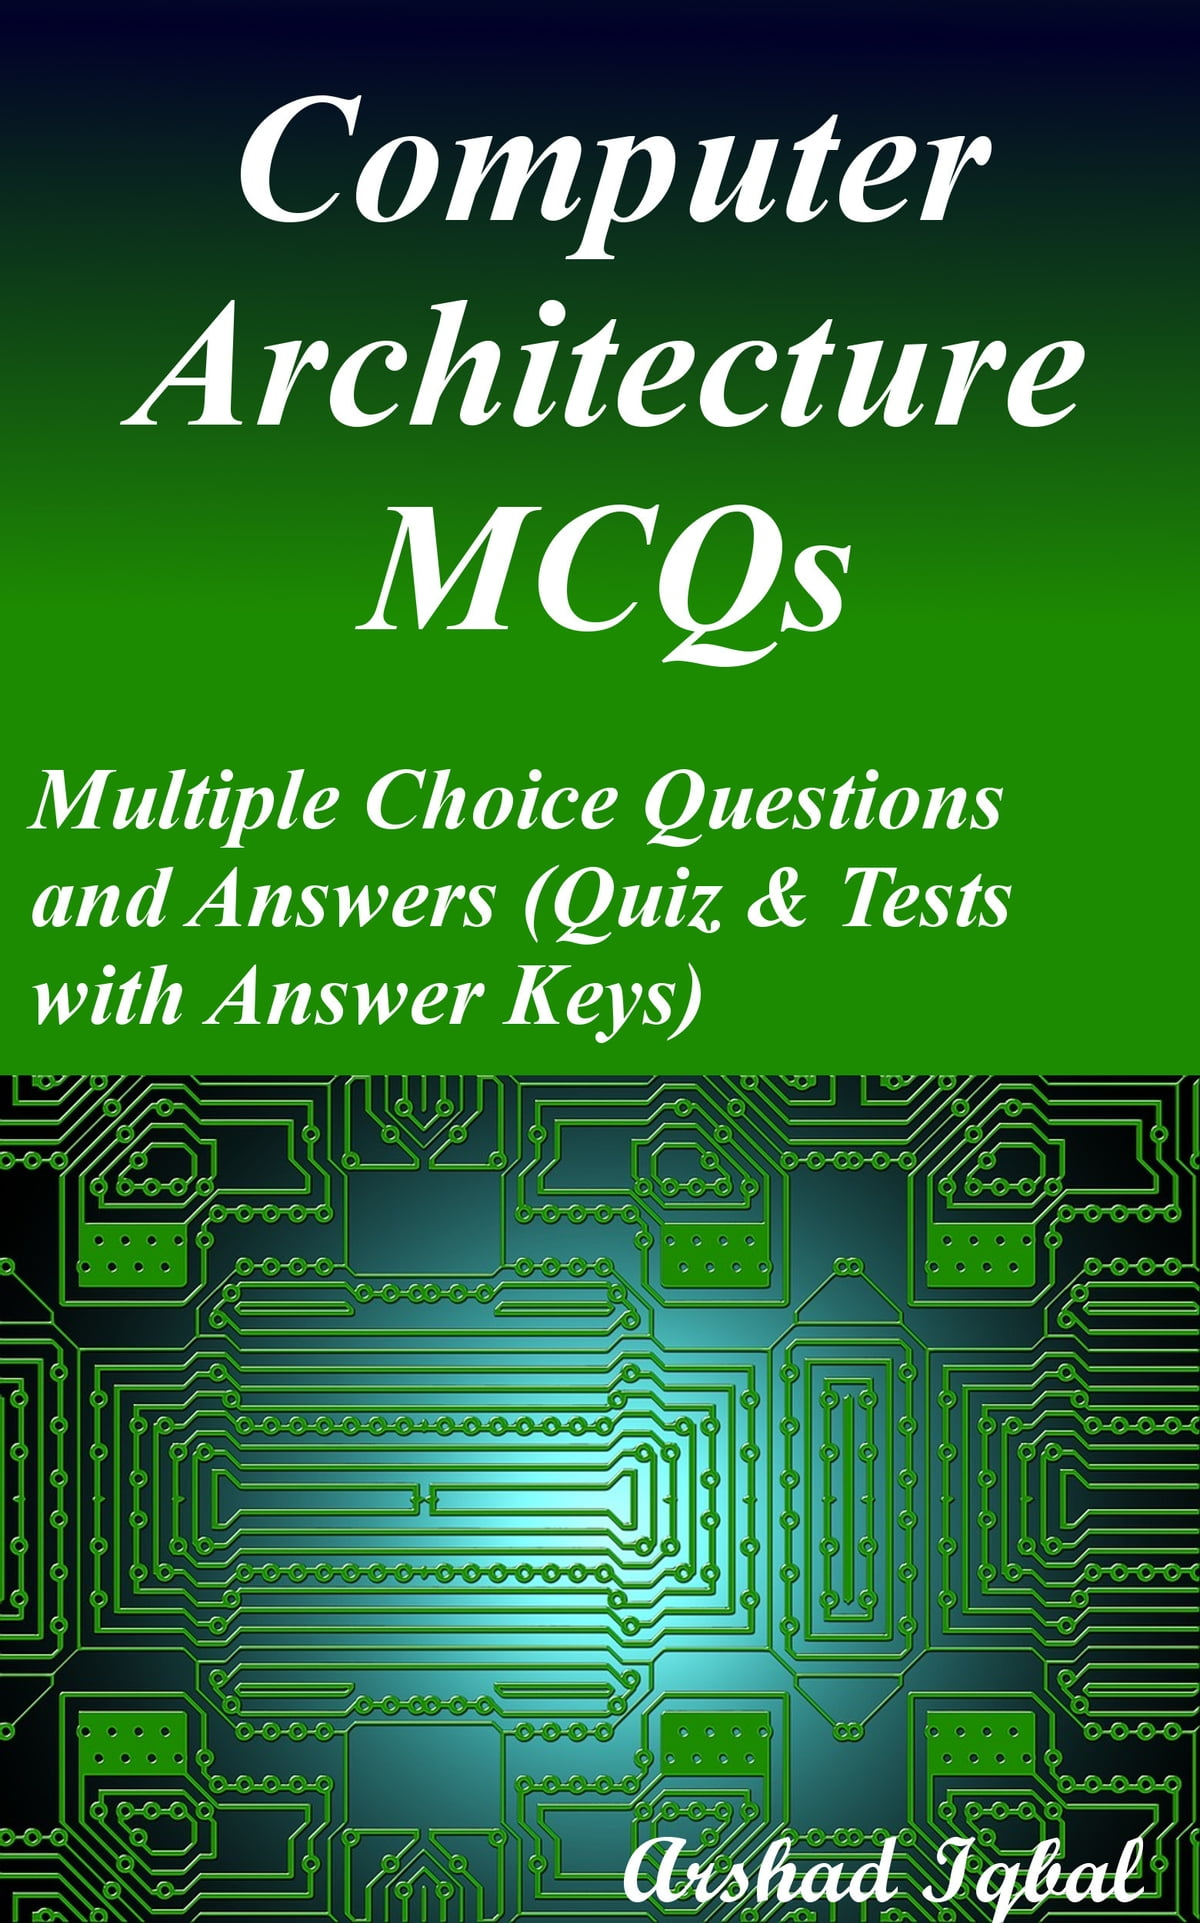 Computer Architecture Mcqs Multiple Choice Questions And Answers Quiz Tests With Answer Keys Computer Architecture Quick Study Guide Problems Book 1 Ebook By Arshad Iqbal 9781310735516 Rakuten Kobo United States